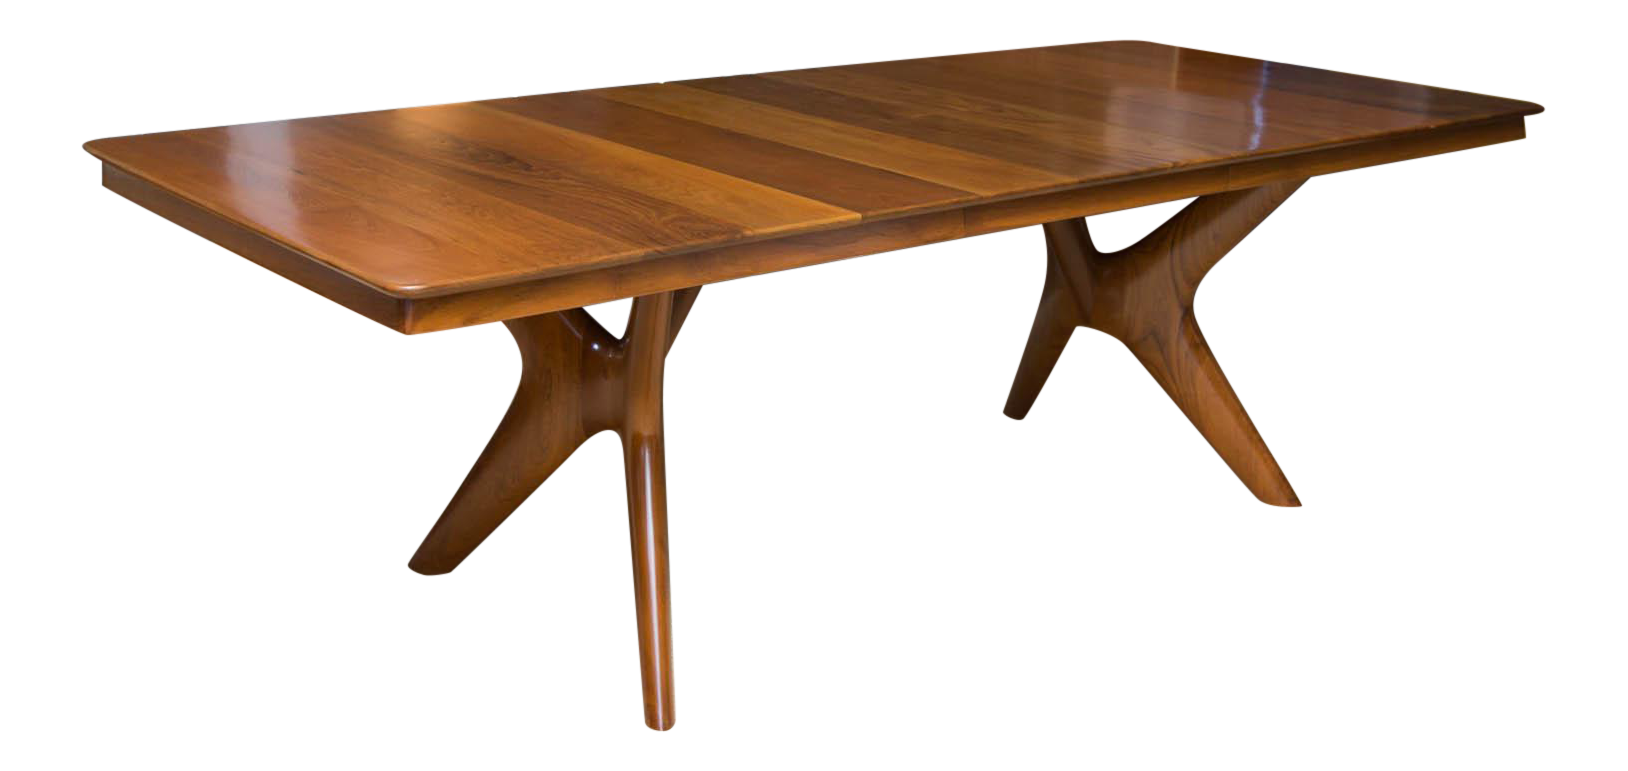 Mid Century Italian Influence Teak Dining Table Chairish : mid century italian influence teak dining table 4088 from www.chairish.com size 1628 x 771 png 792kB